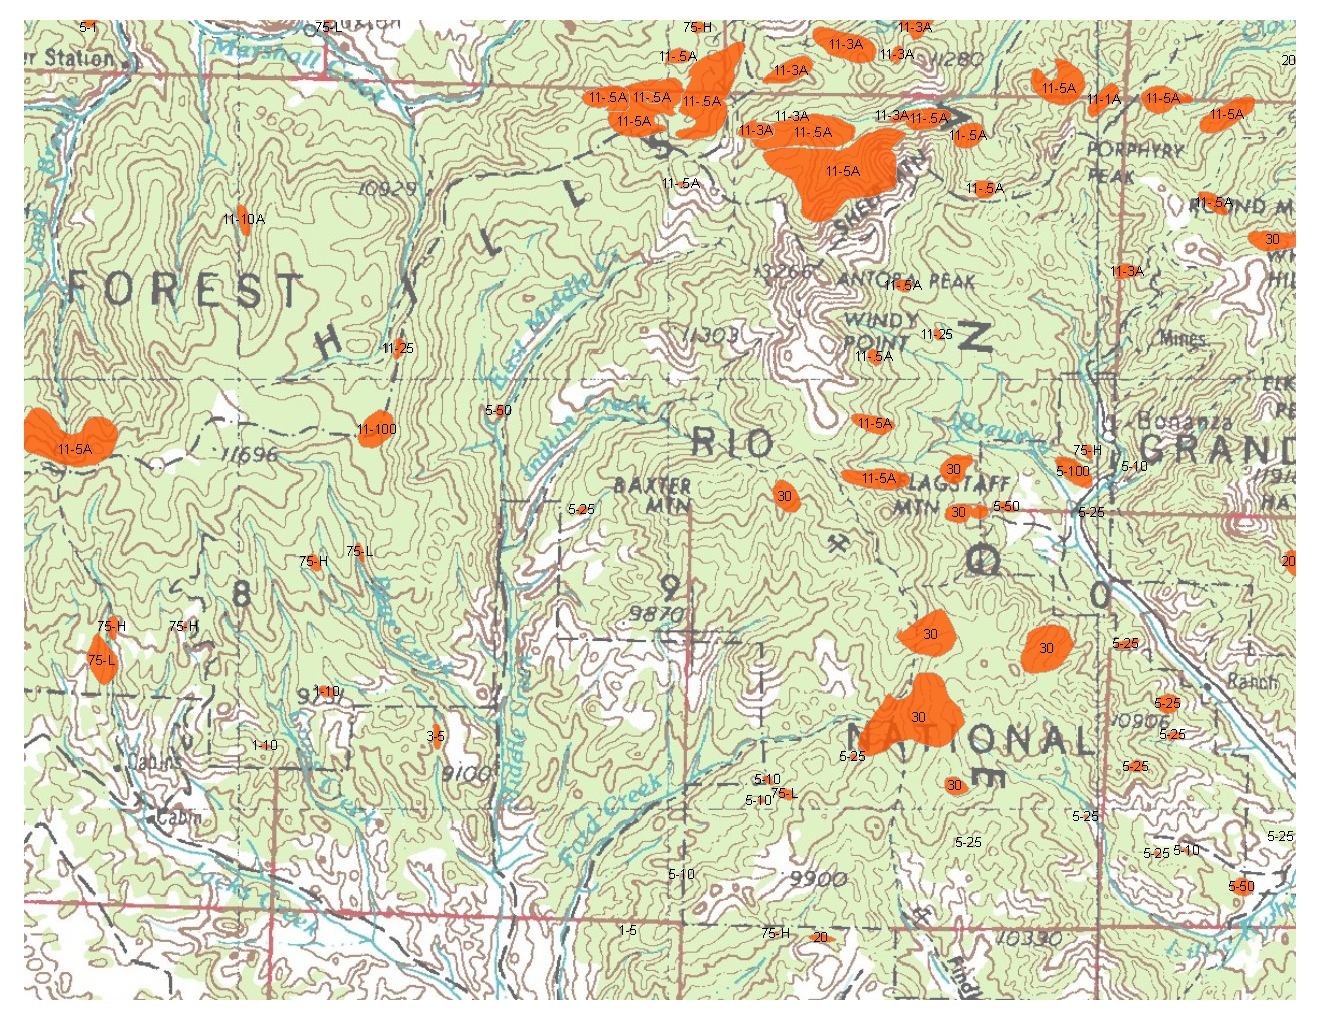 Region  Forest  Grassland Health - Us forest service ecoregion map